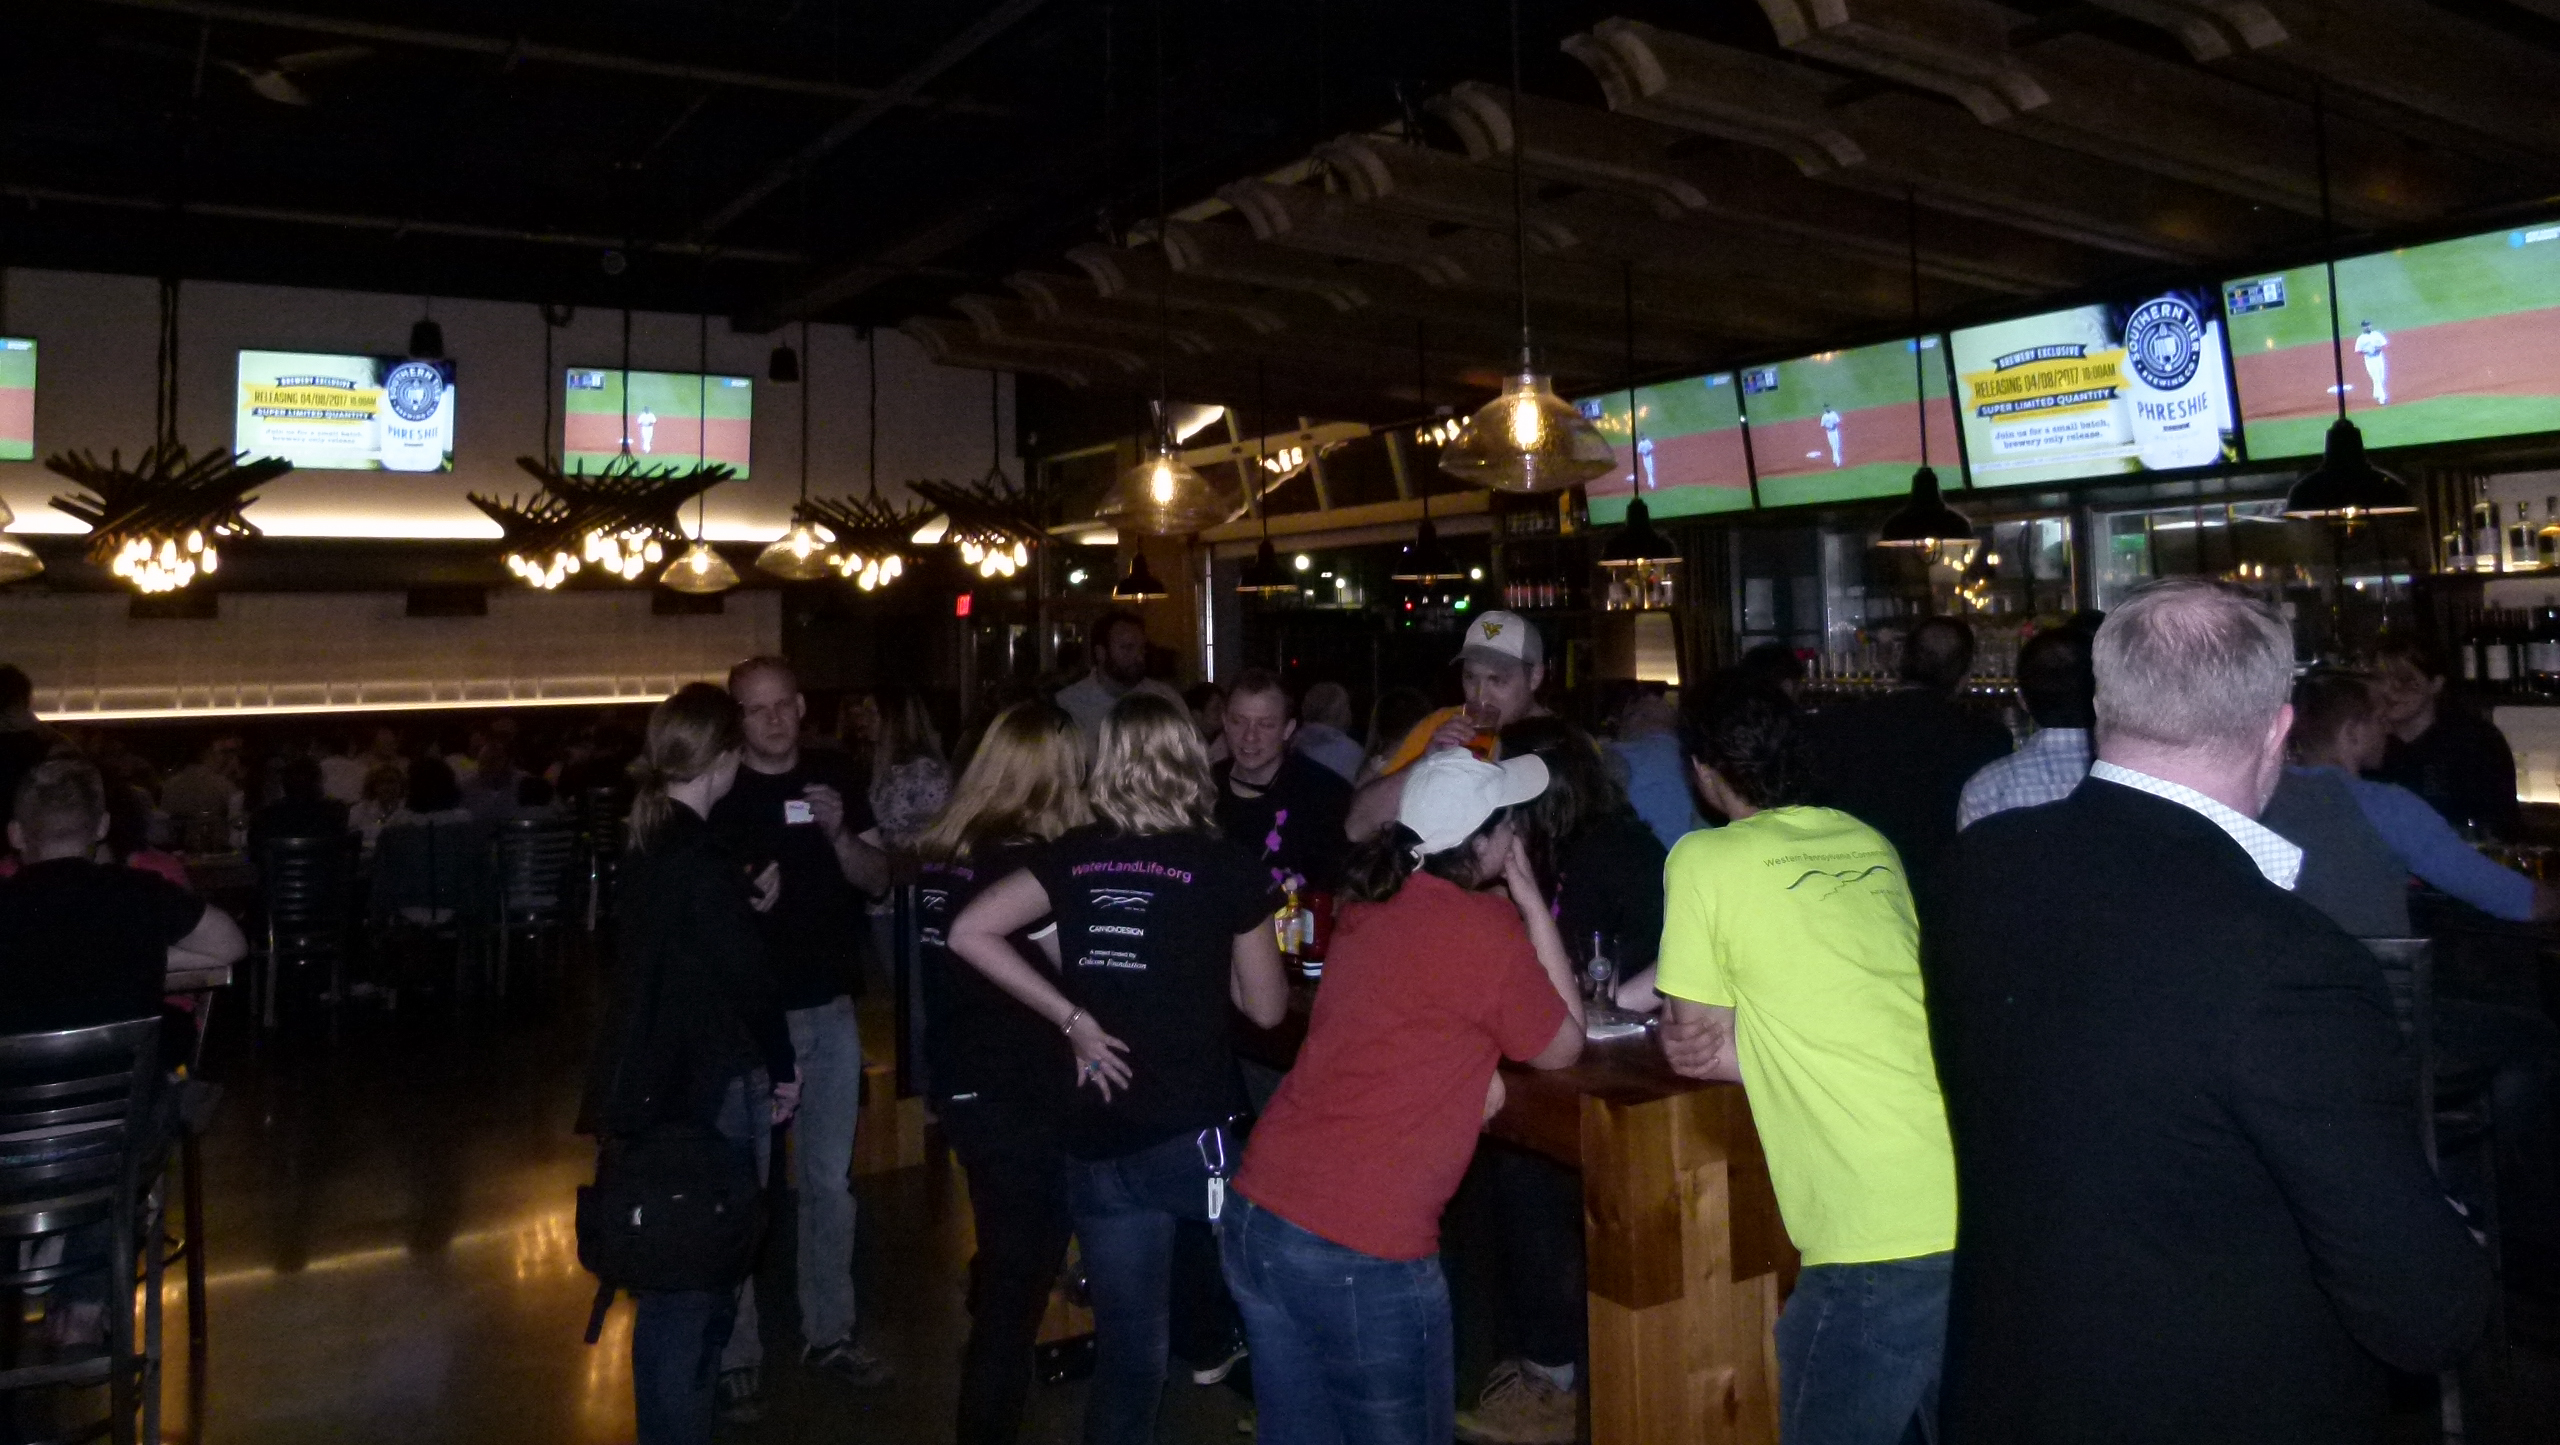 Southern Tier features their own brews, good dining options and plenty of TVs to watch the game.